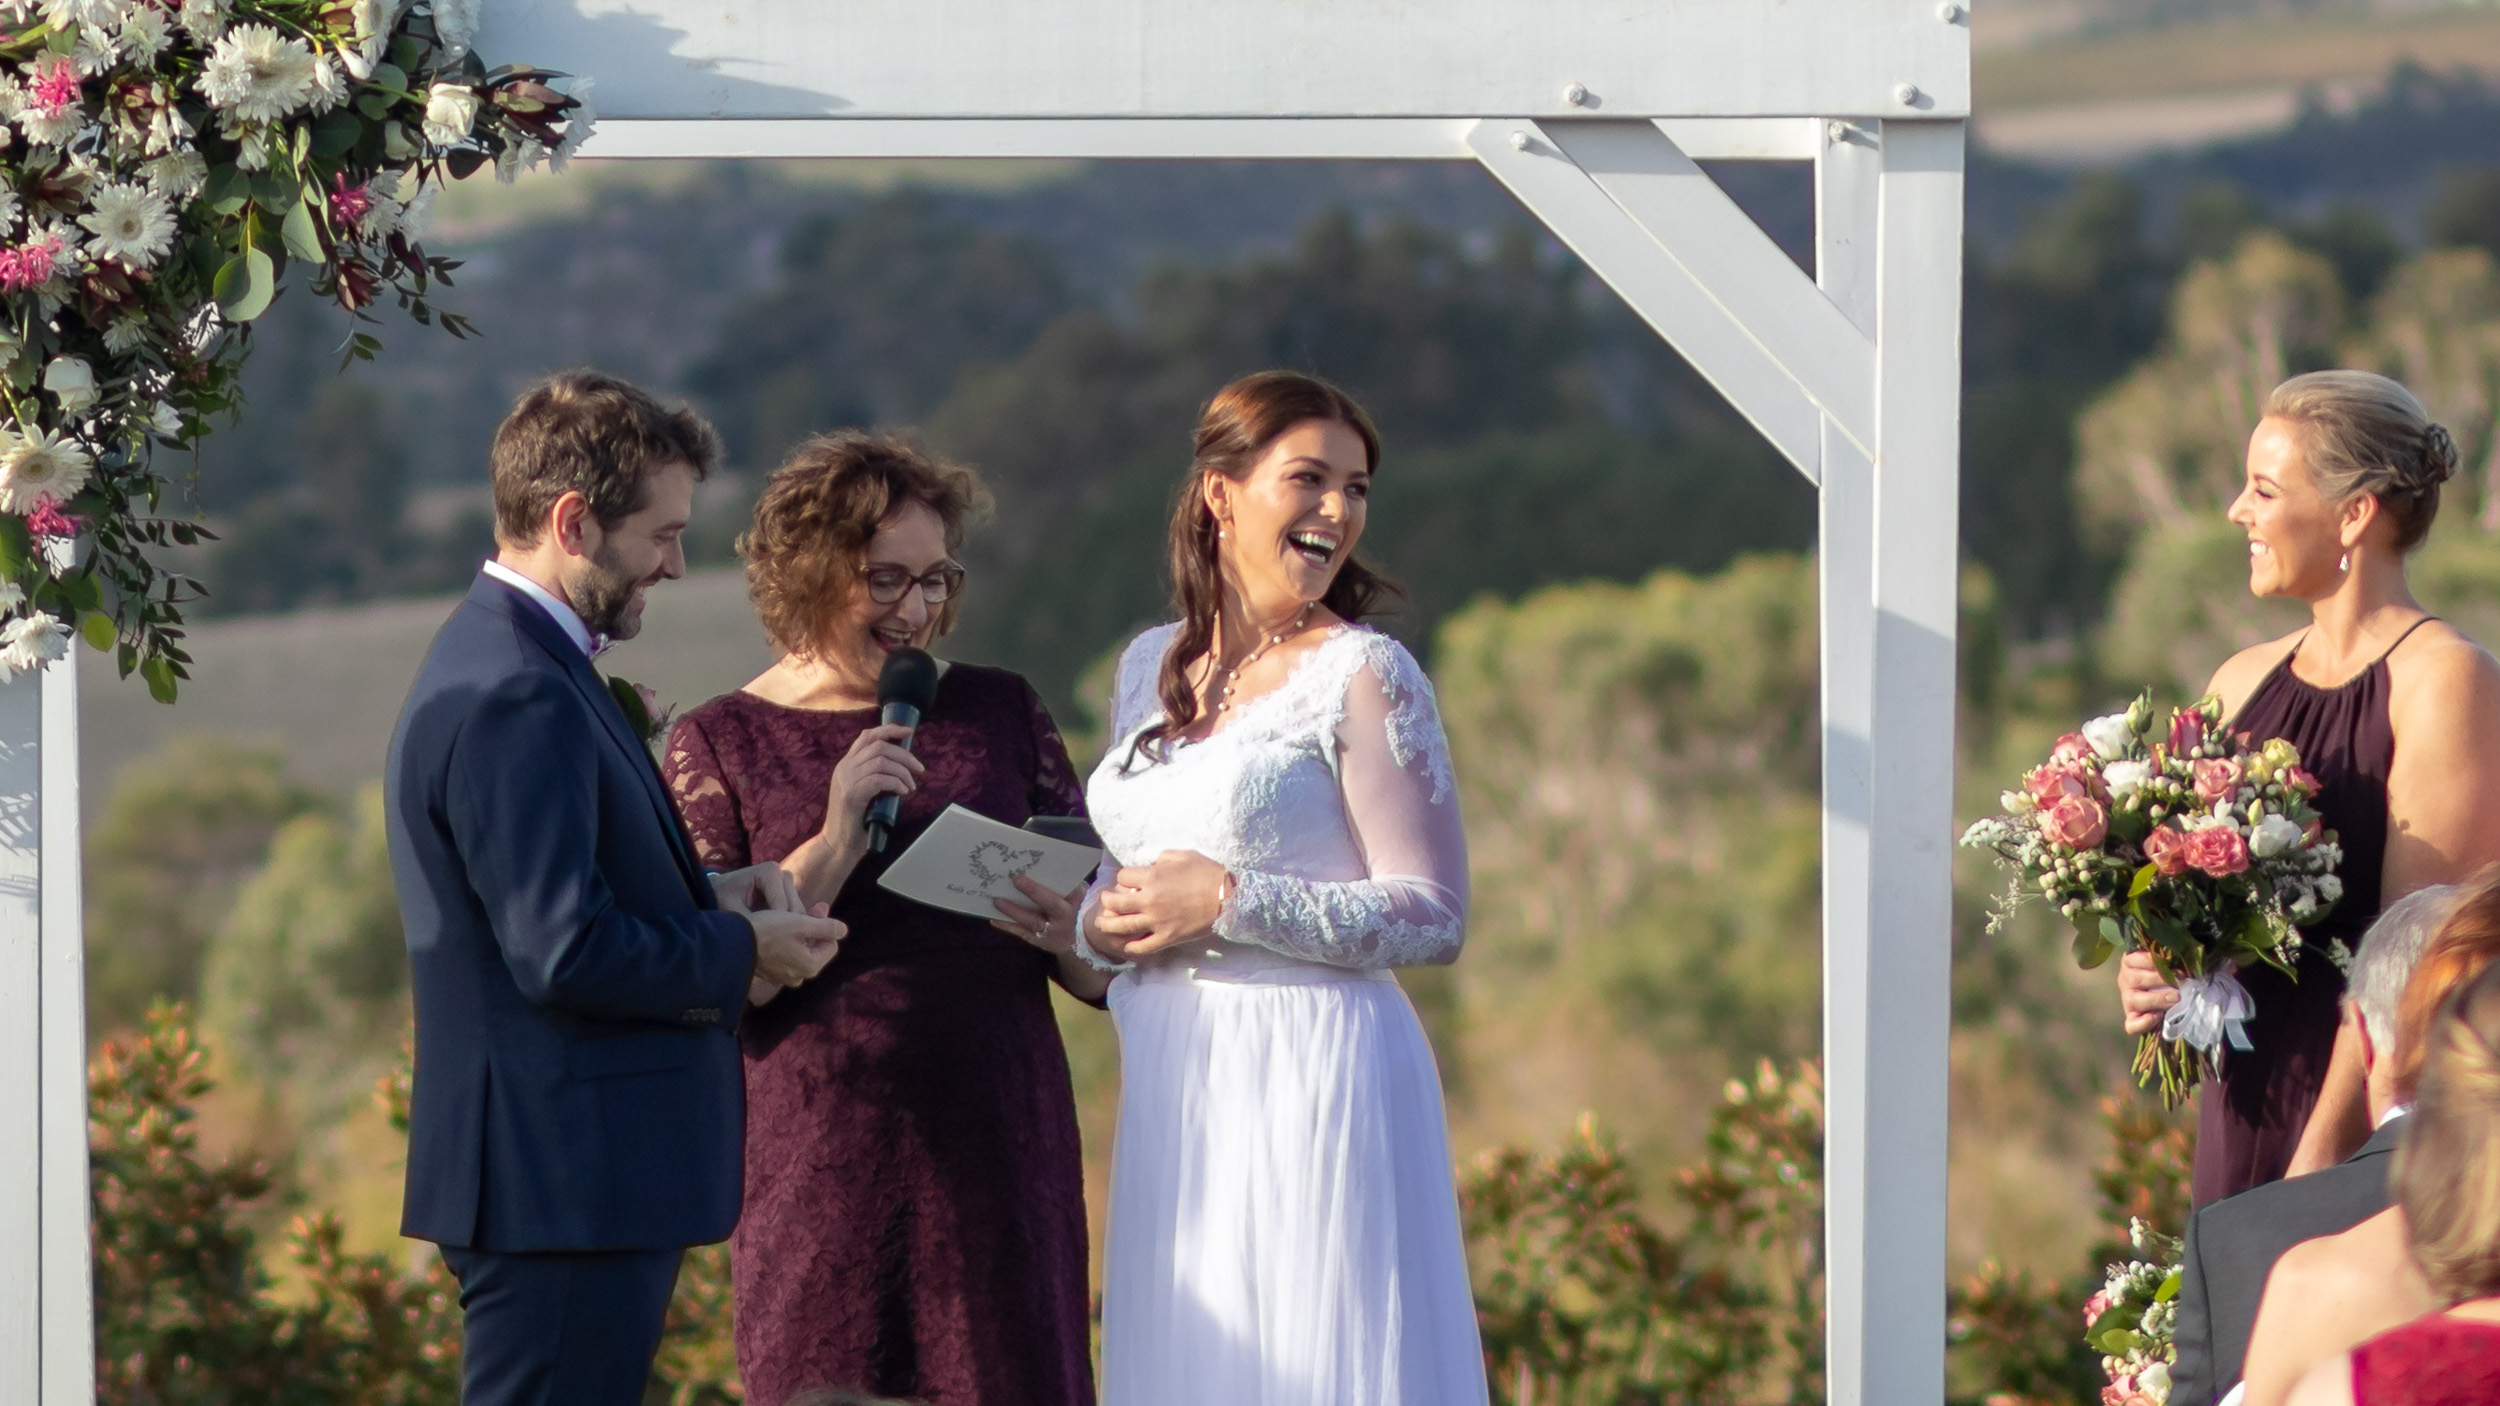 Virginia-Lawrence-Family-Funeral-and-Marriage-Celebrant-at Bines-of-the-Yarra-Valley.jpg